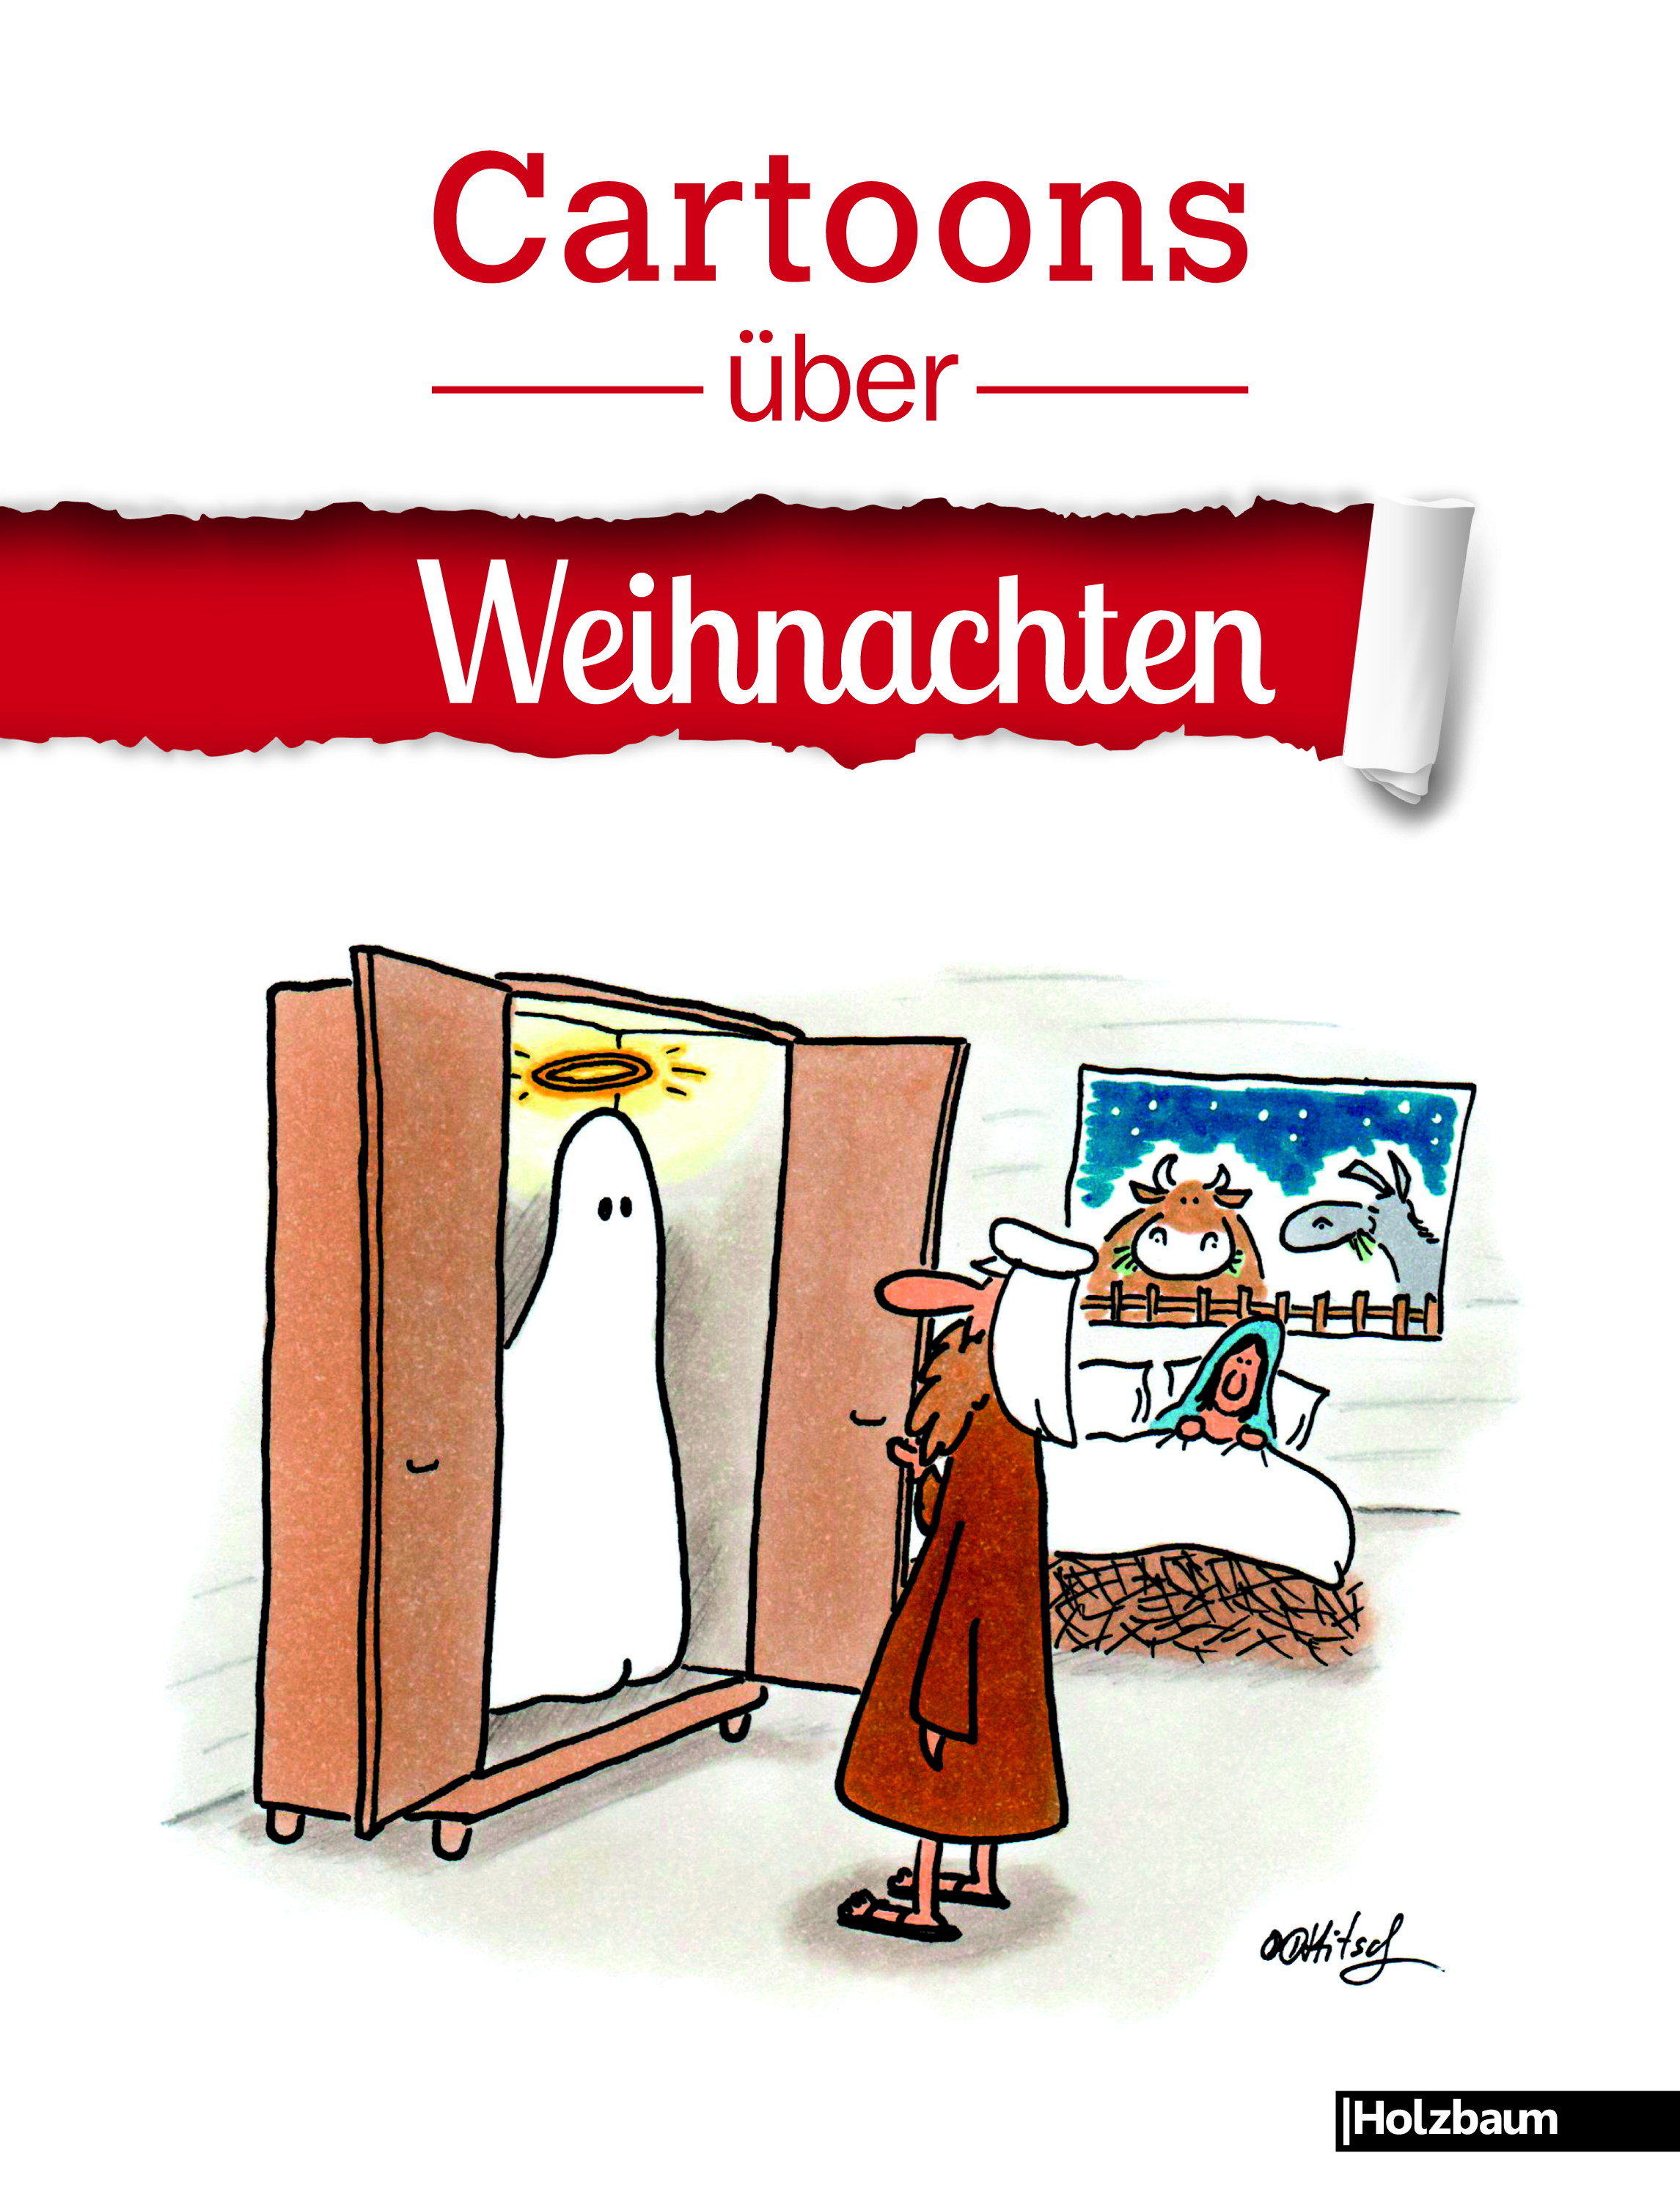 cartoons ber weihnachten holzbaum verlag. Black Bedroom Furniture Sets. Home Design Ideas